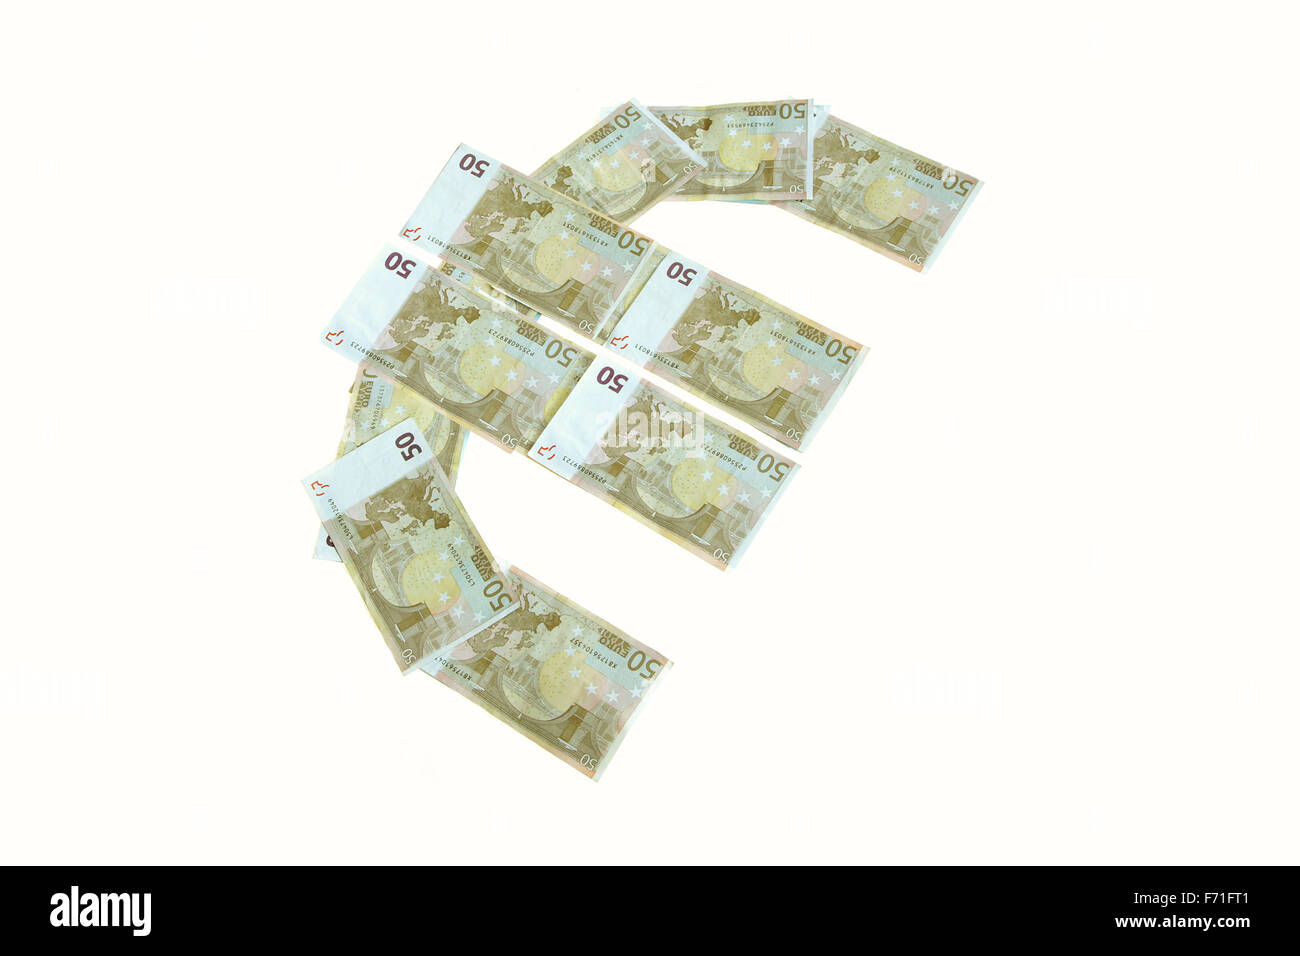 euro sign symbol made of banknotes greenback paper money isolated on white - Stock Image